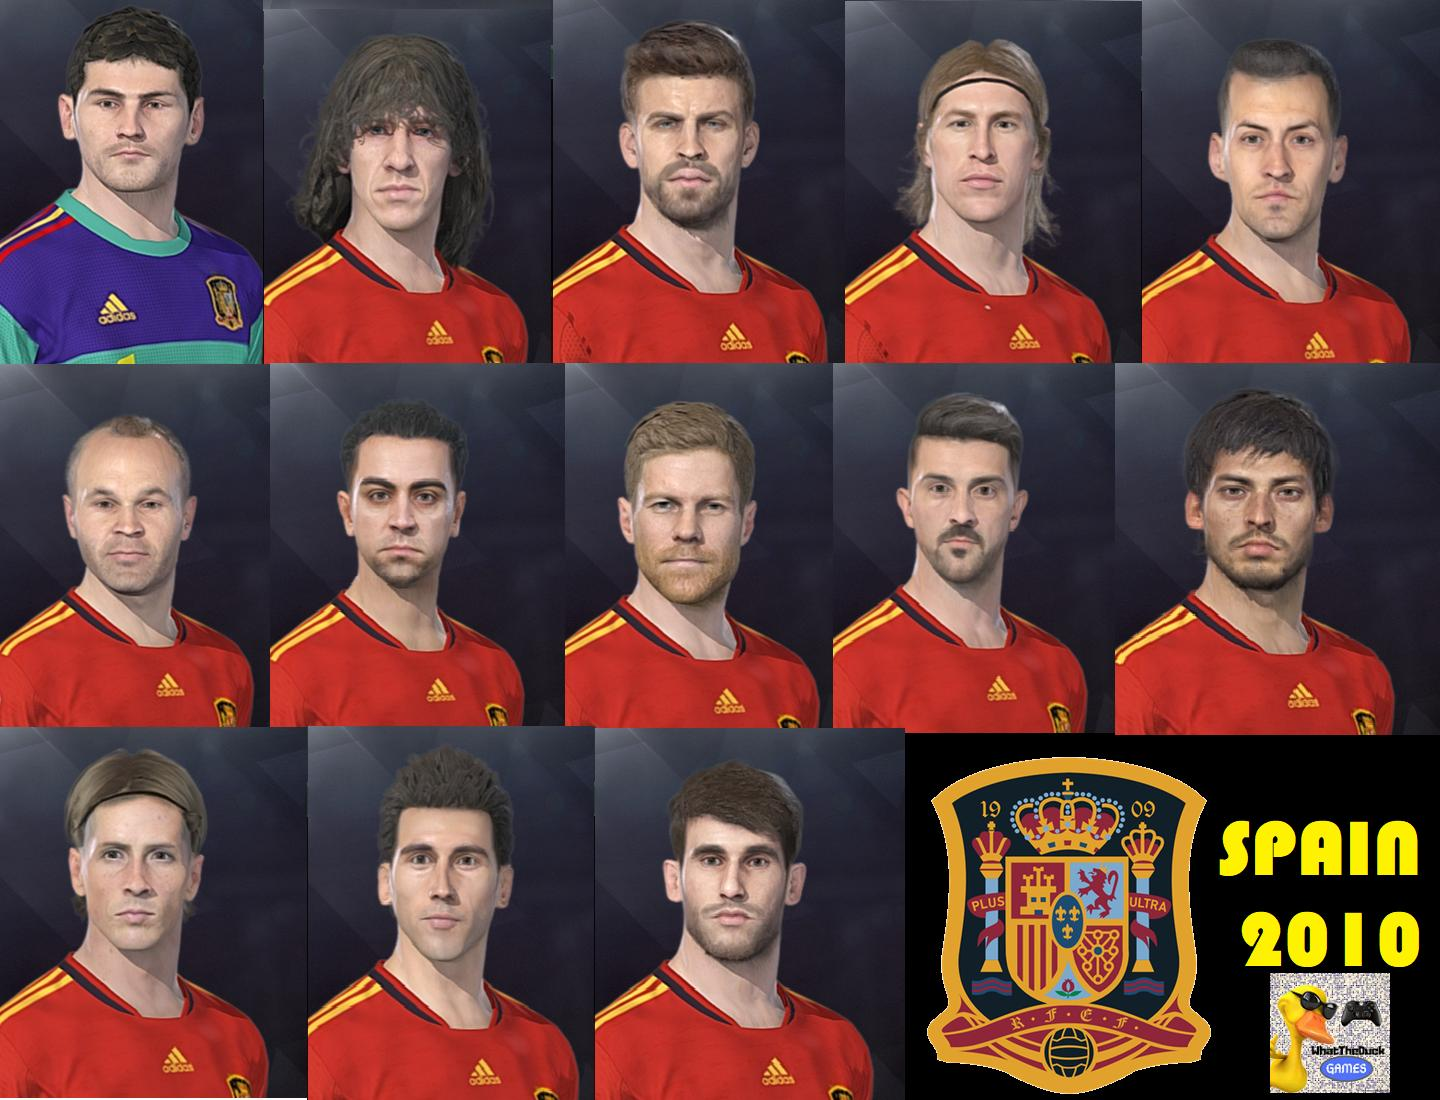 Spain's 2010 World Cup Team For PES 2018 by WhatTheDuck